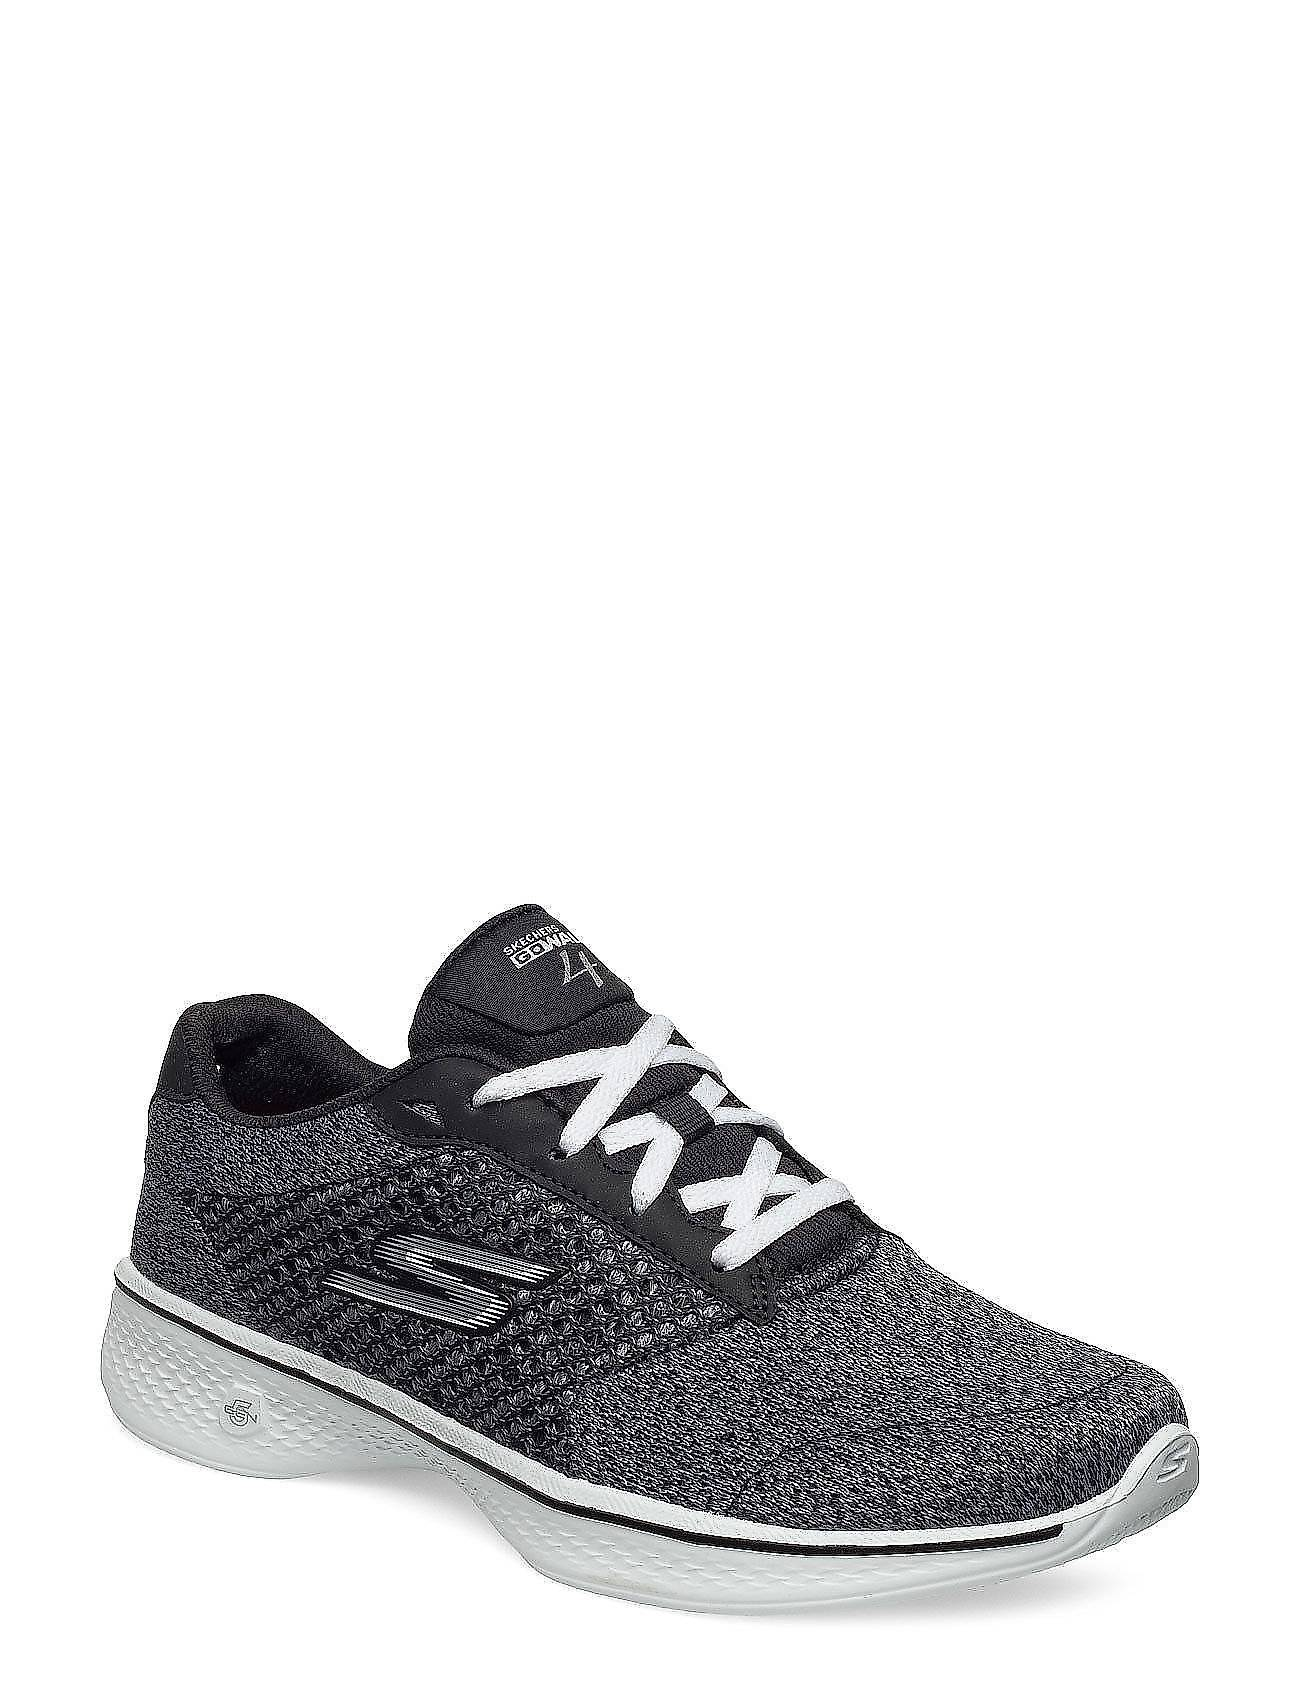 Skechers Womens Go Walk 4 - Exeed